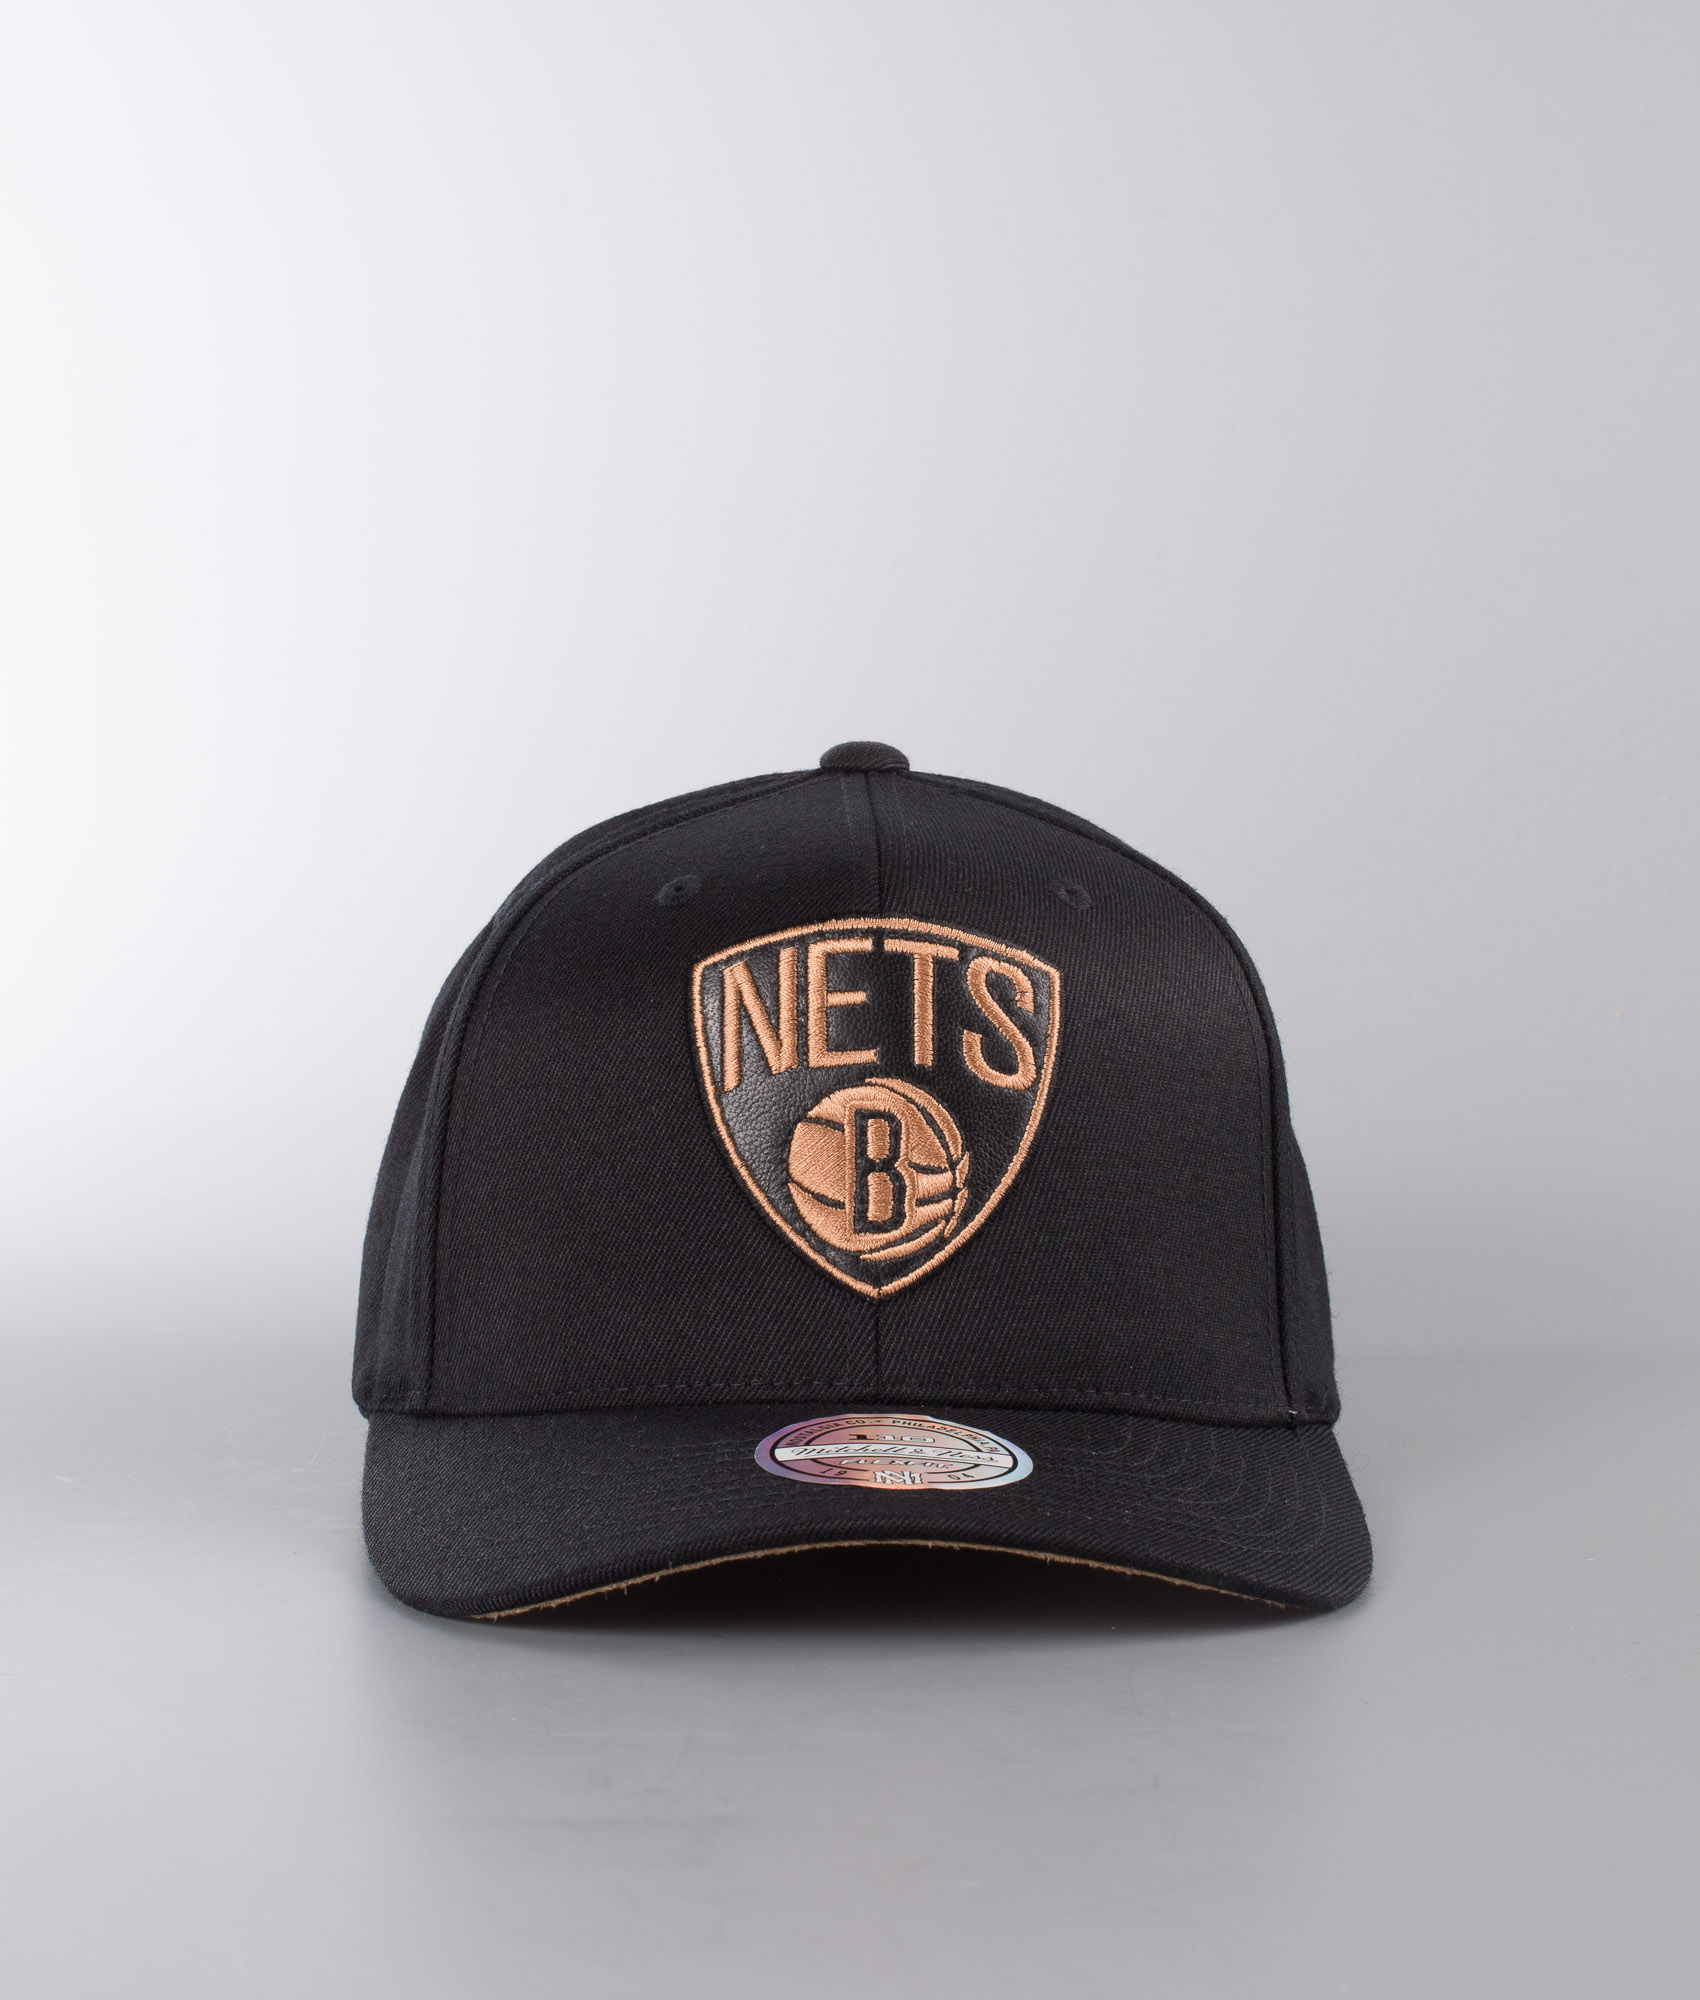 buy online 6f311 e3086 ... switzerland mitchell and ness leather logo 110 brooklyn nets cap 2efc6  b19b8